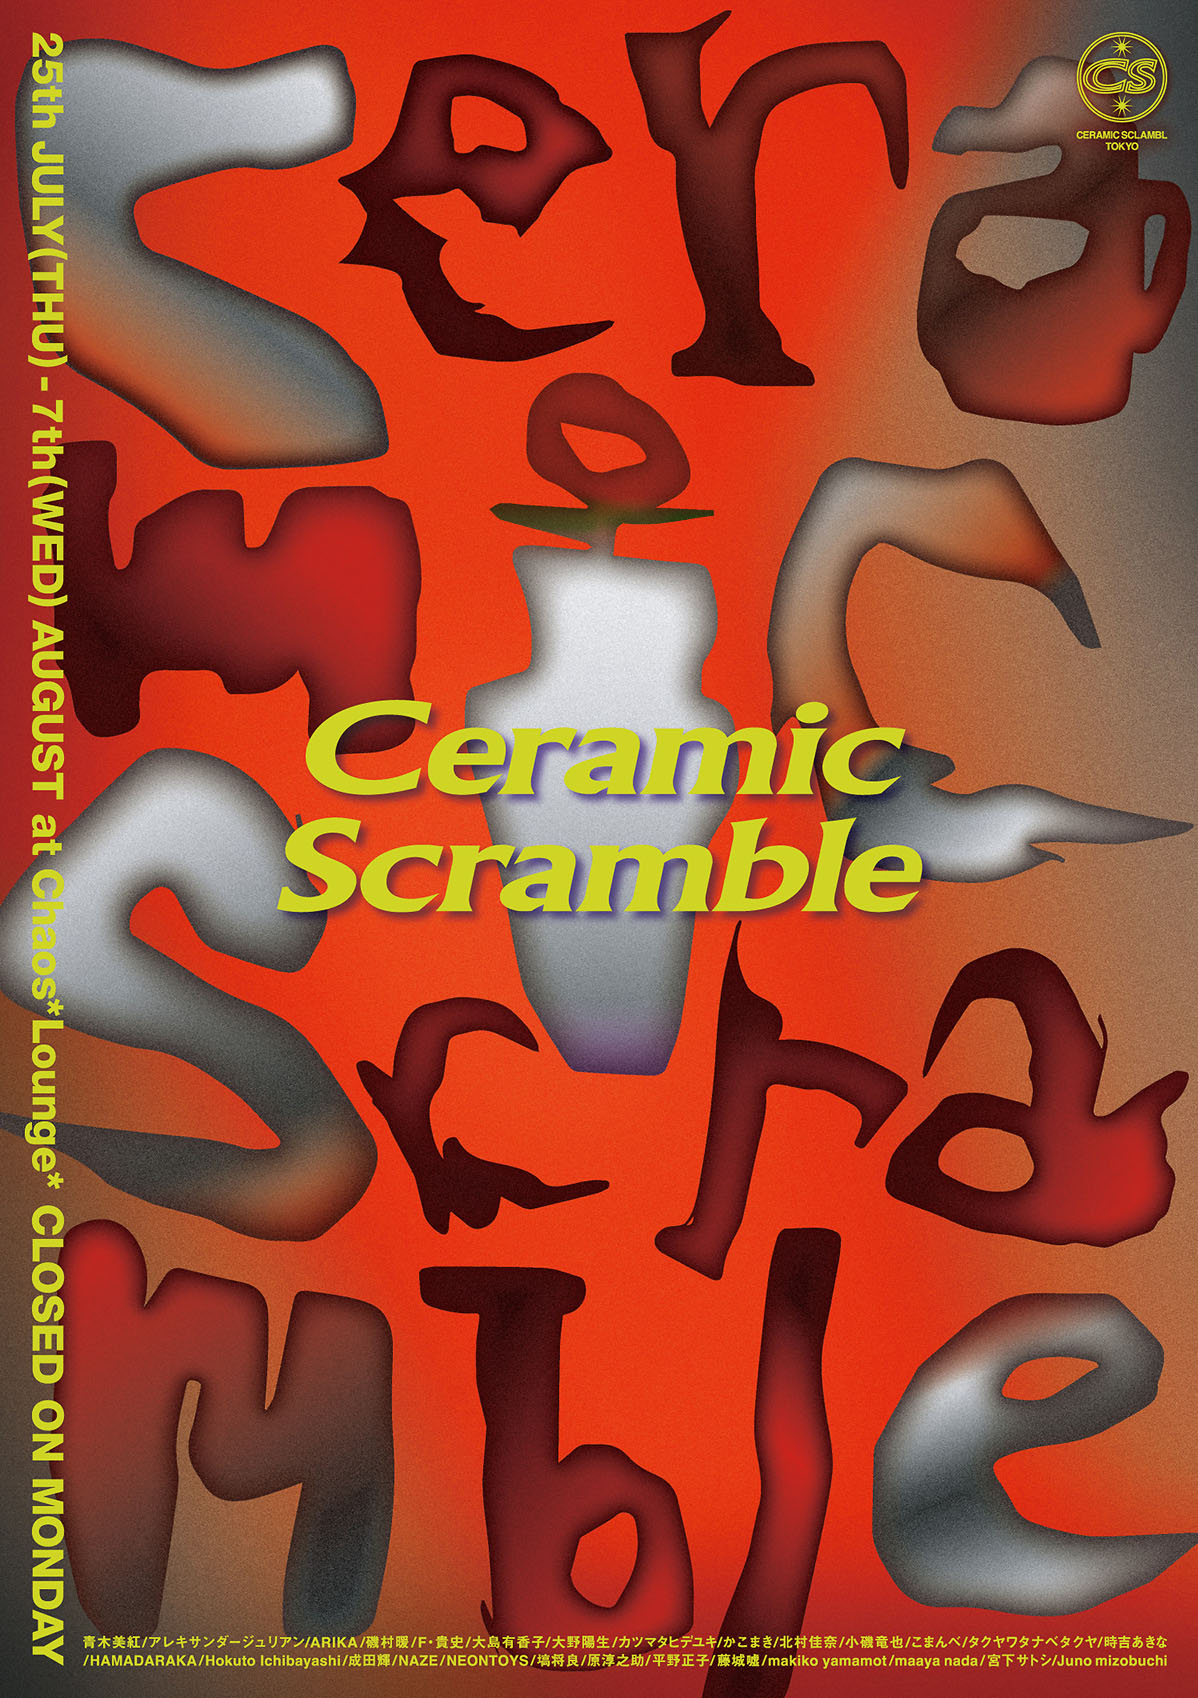 『ceramic scramble』